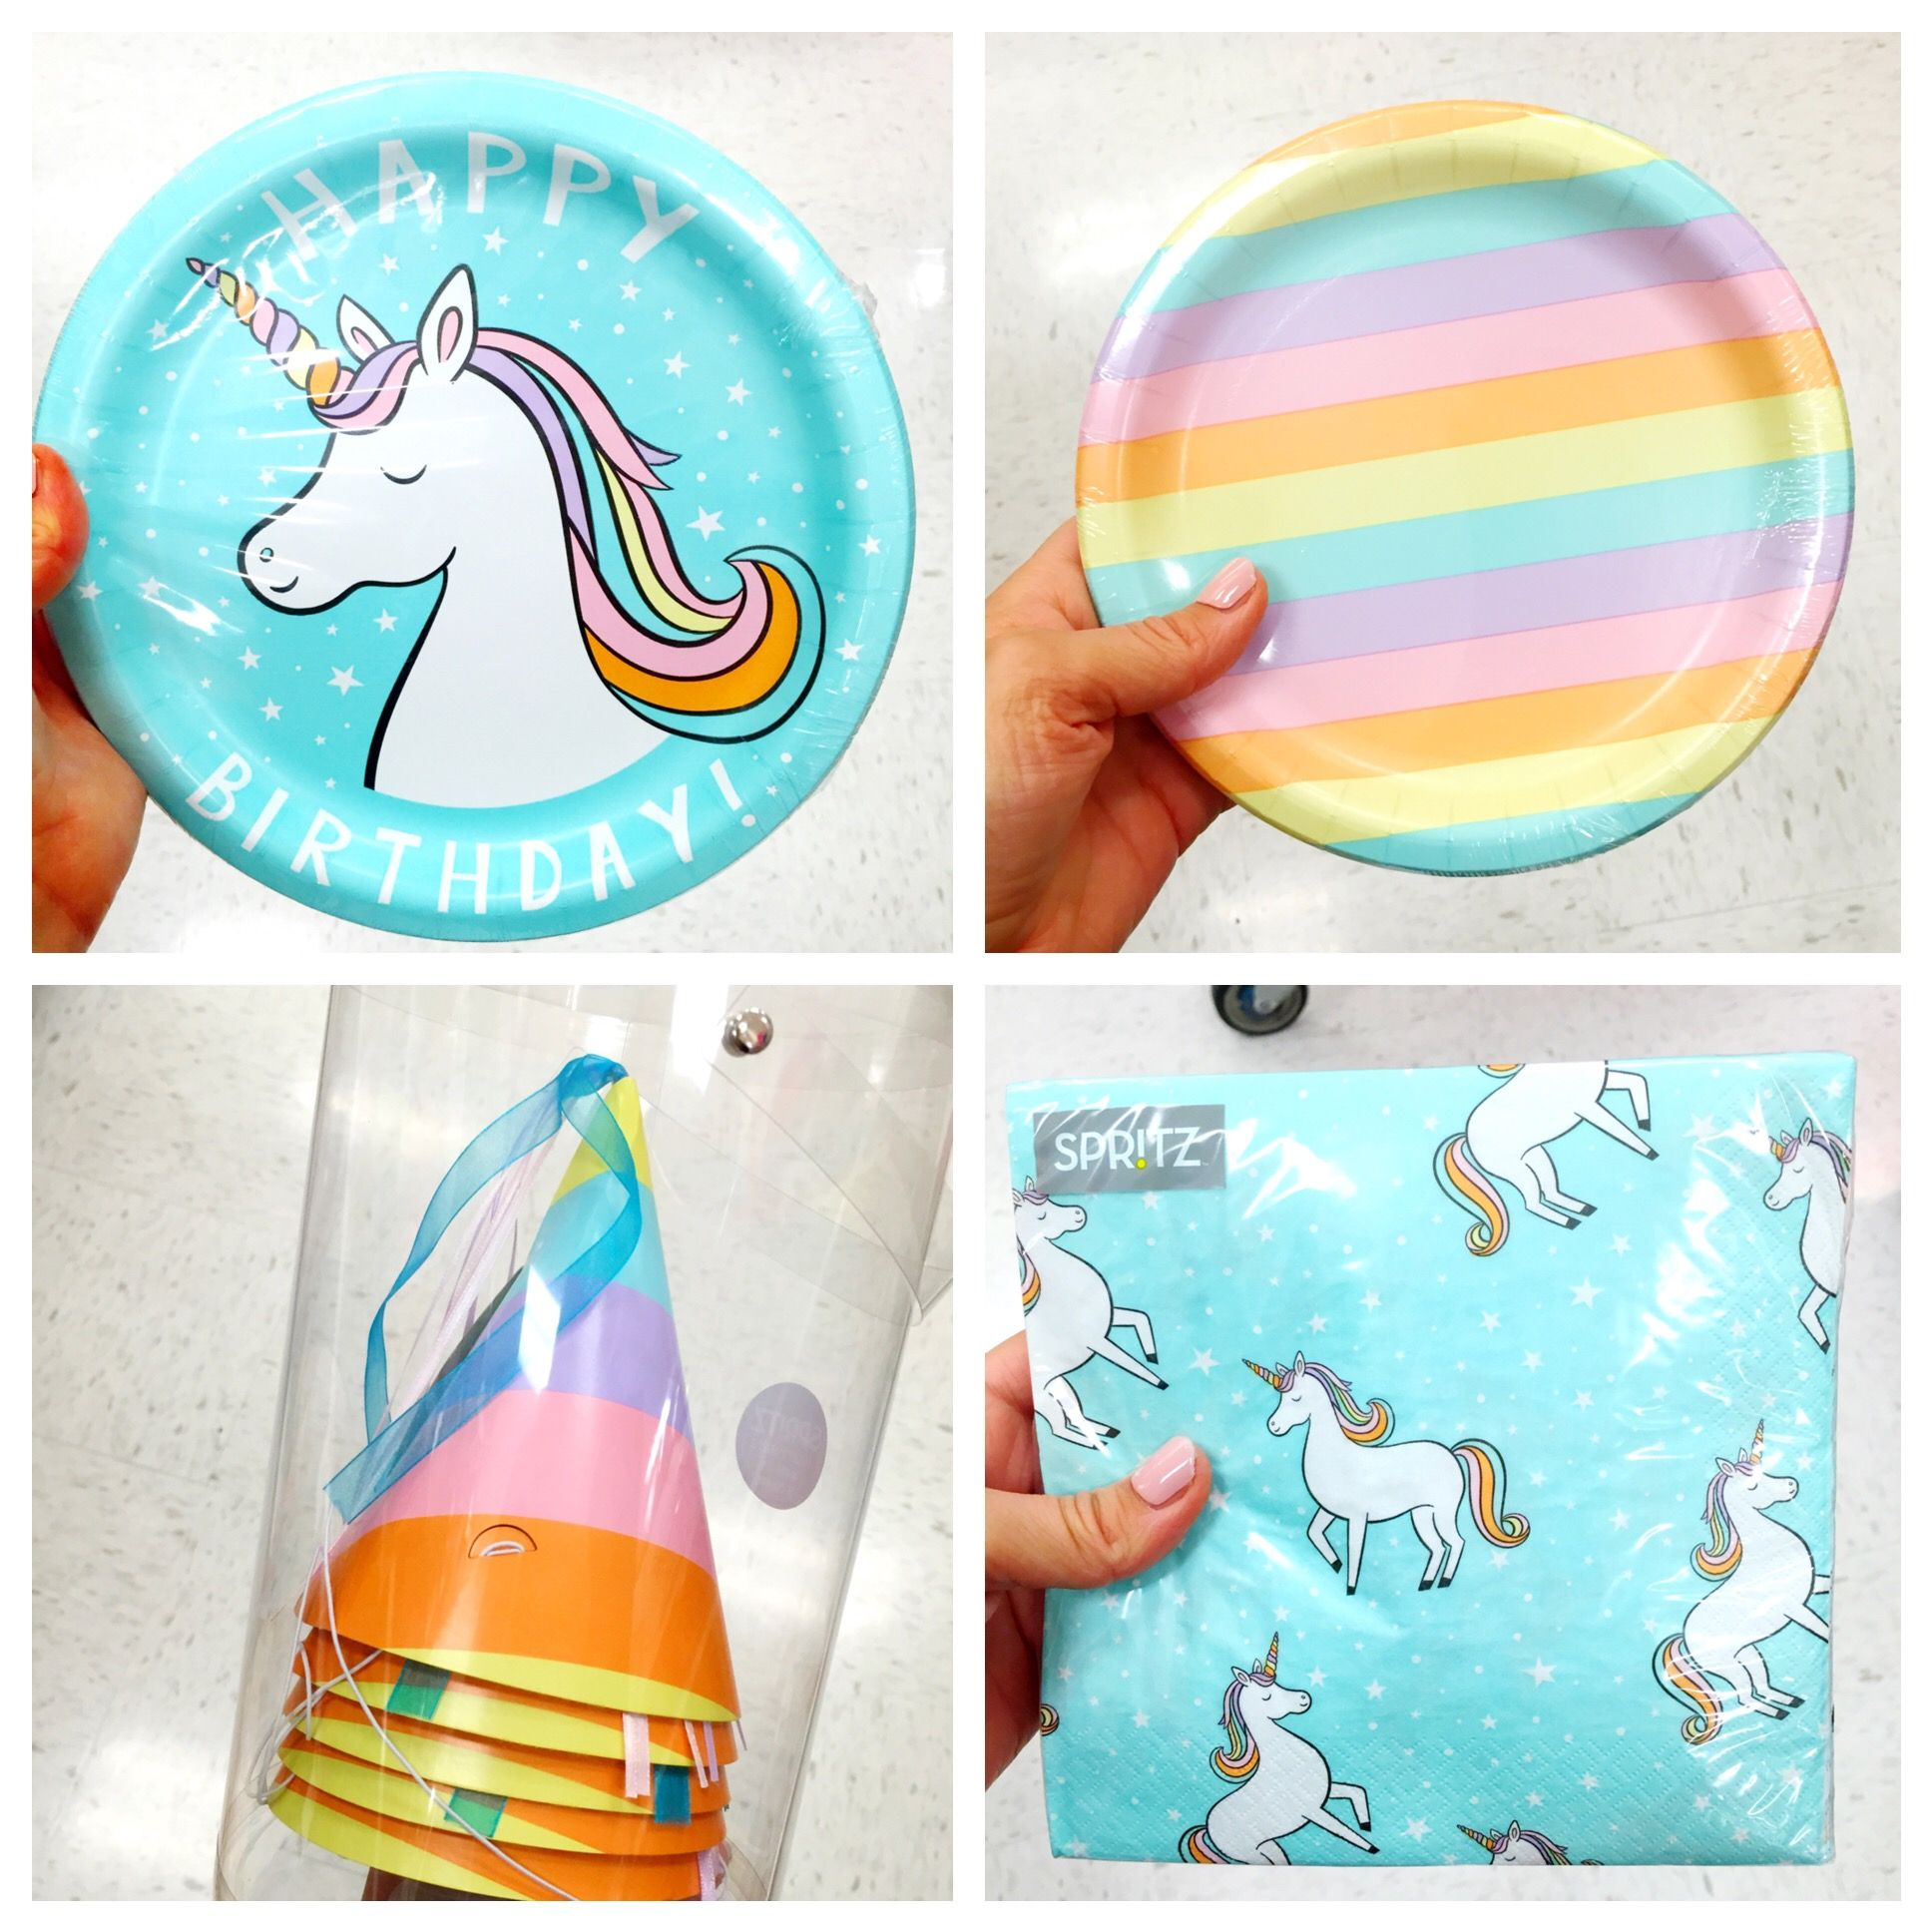 Unicorn Party Supplies Are At Target Love The Pastel Rainbow Design